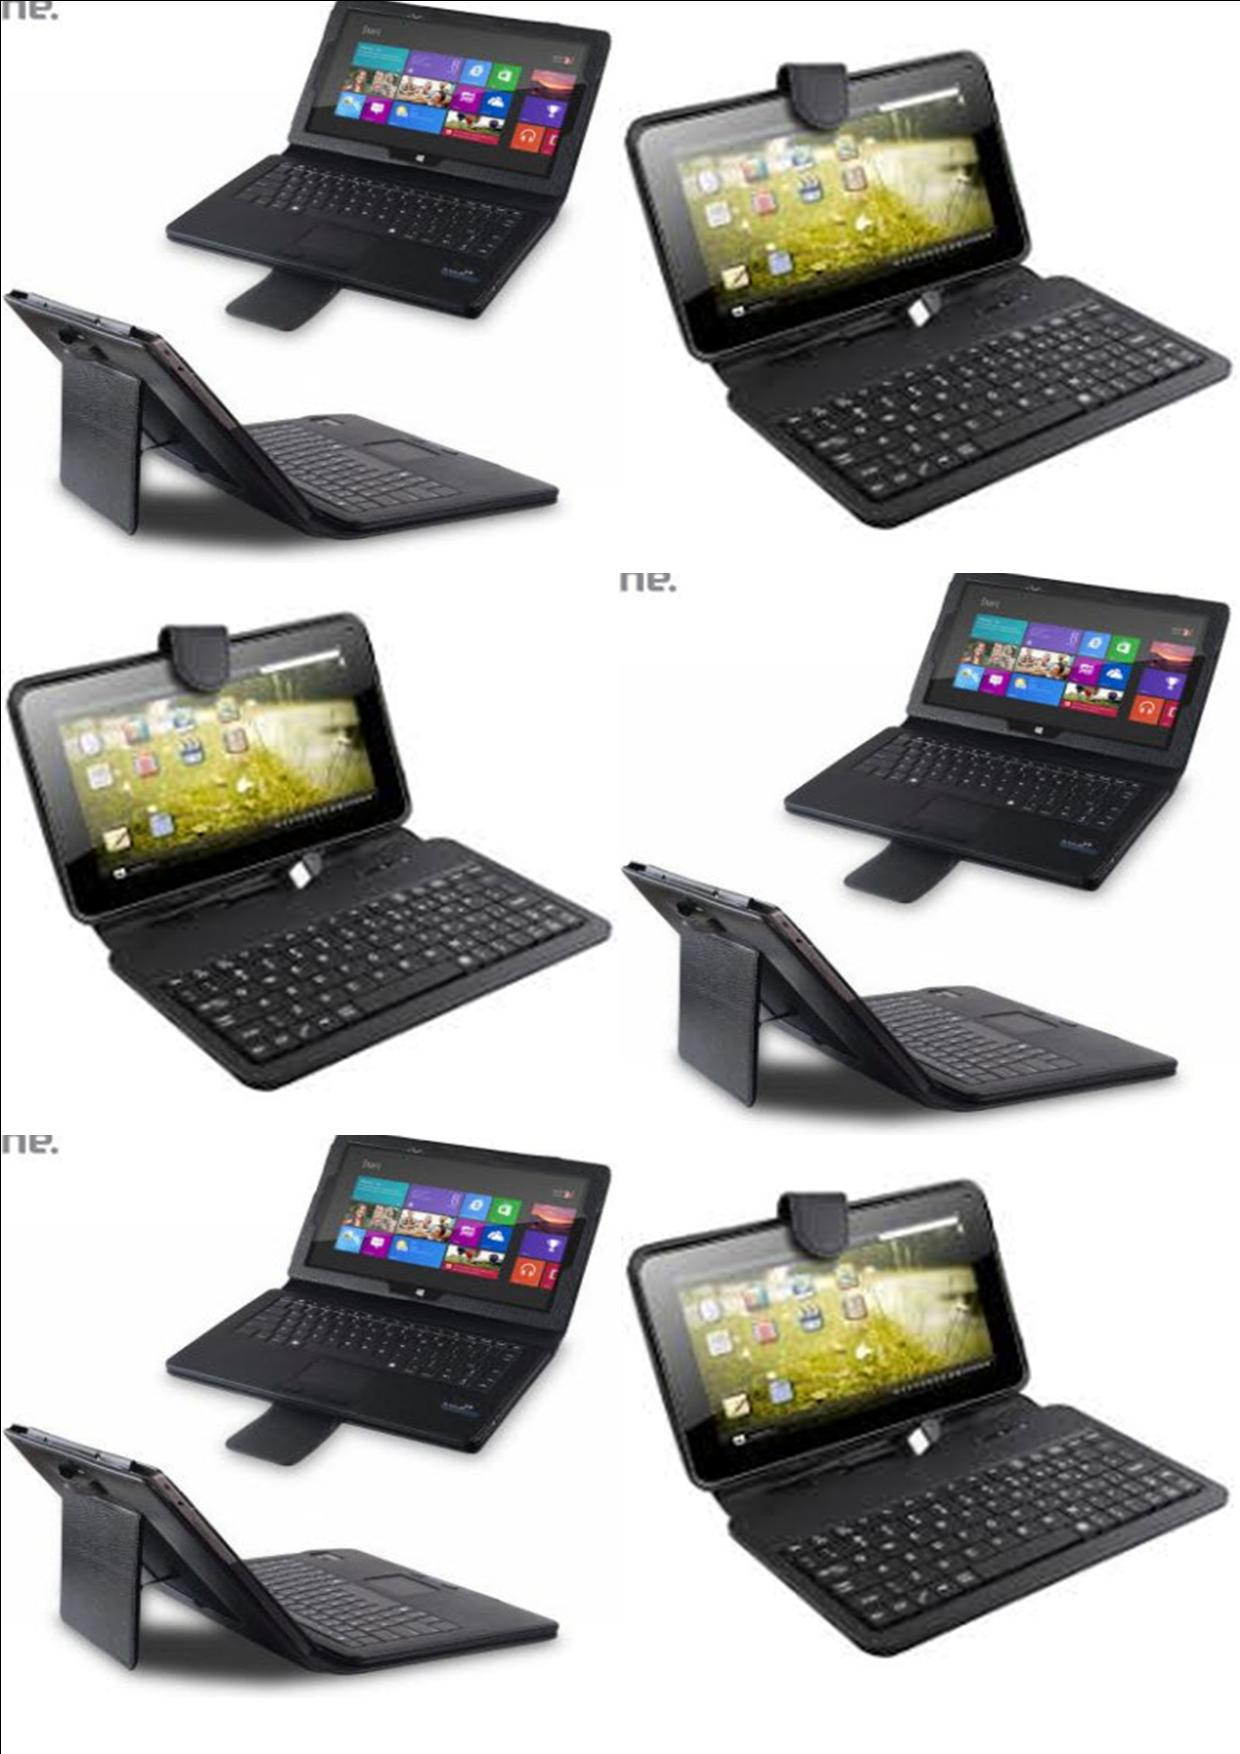 7inch Proline Tablets with Keyboard Brand New at very low price